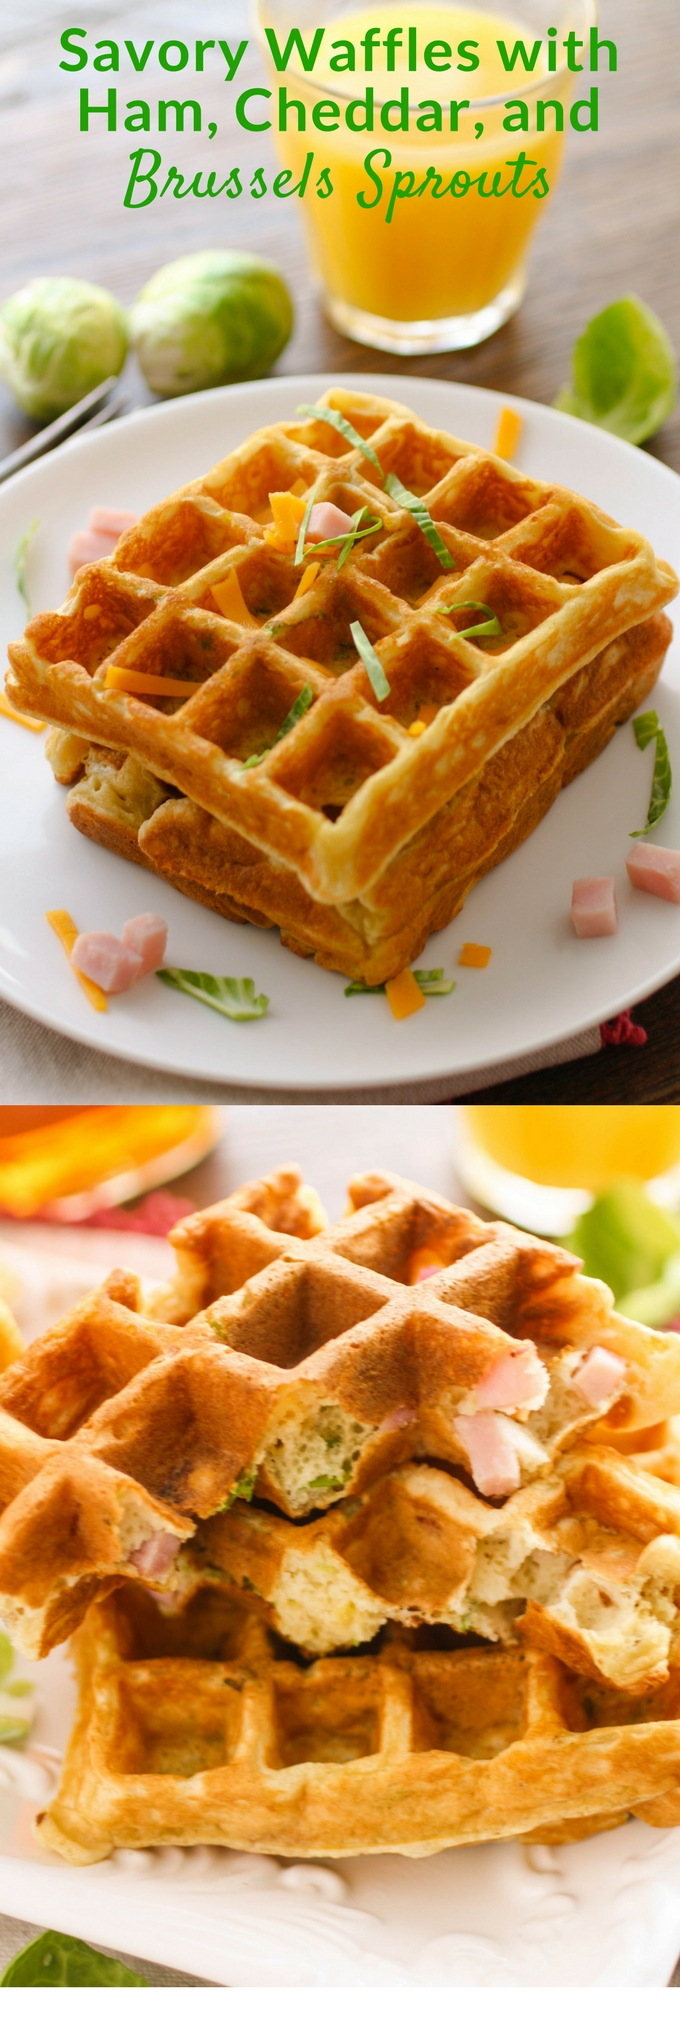 Savory waffles with ham, cheddar, and Brussels sprouts aren't your regular waffles! They're so fun to serve for any meal!